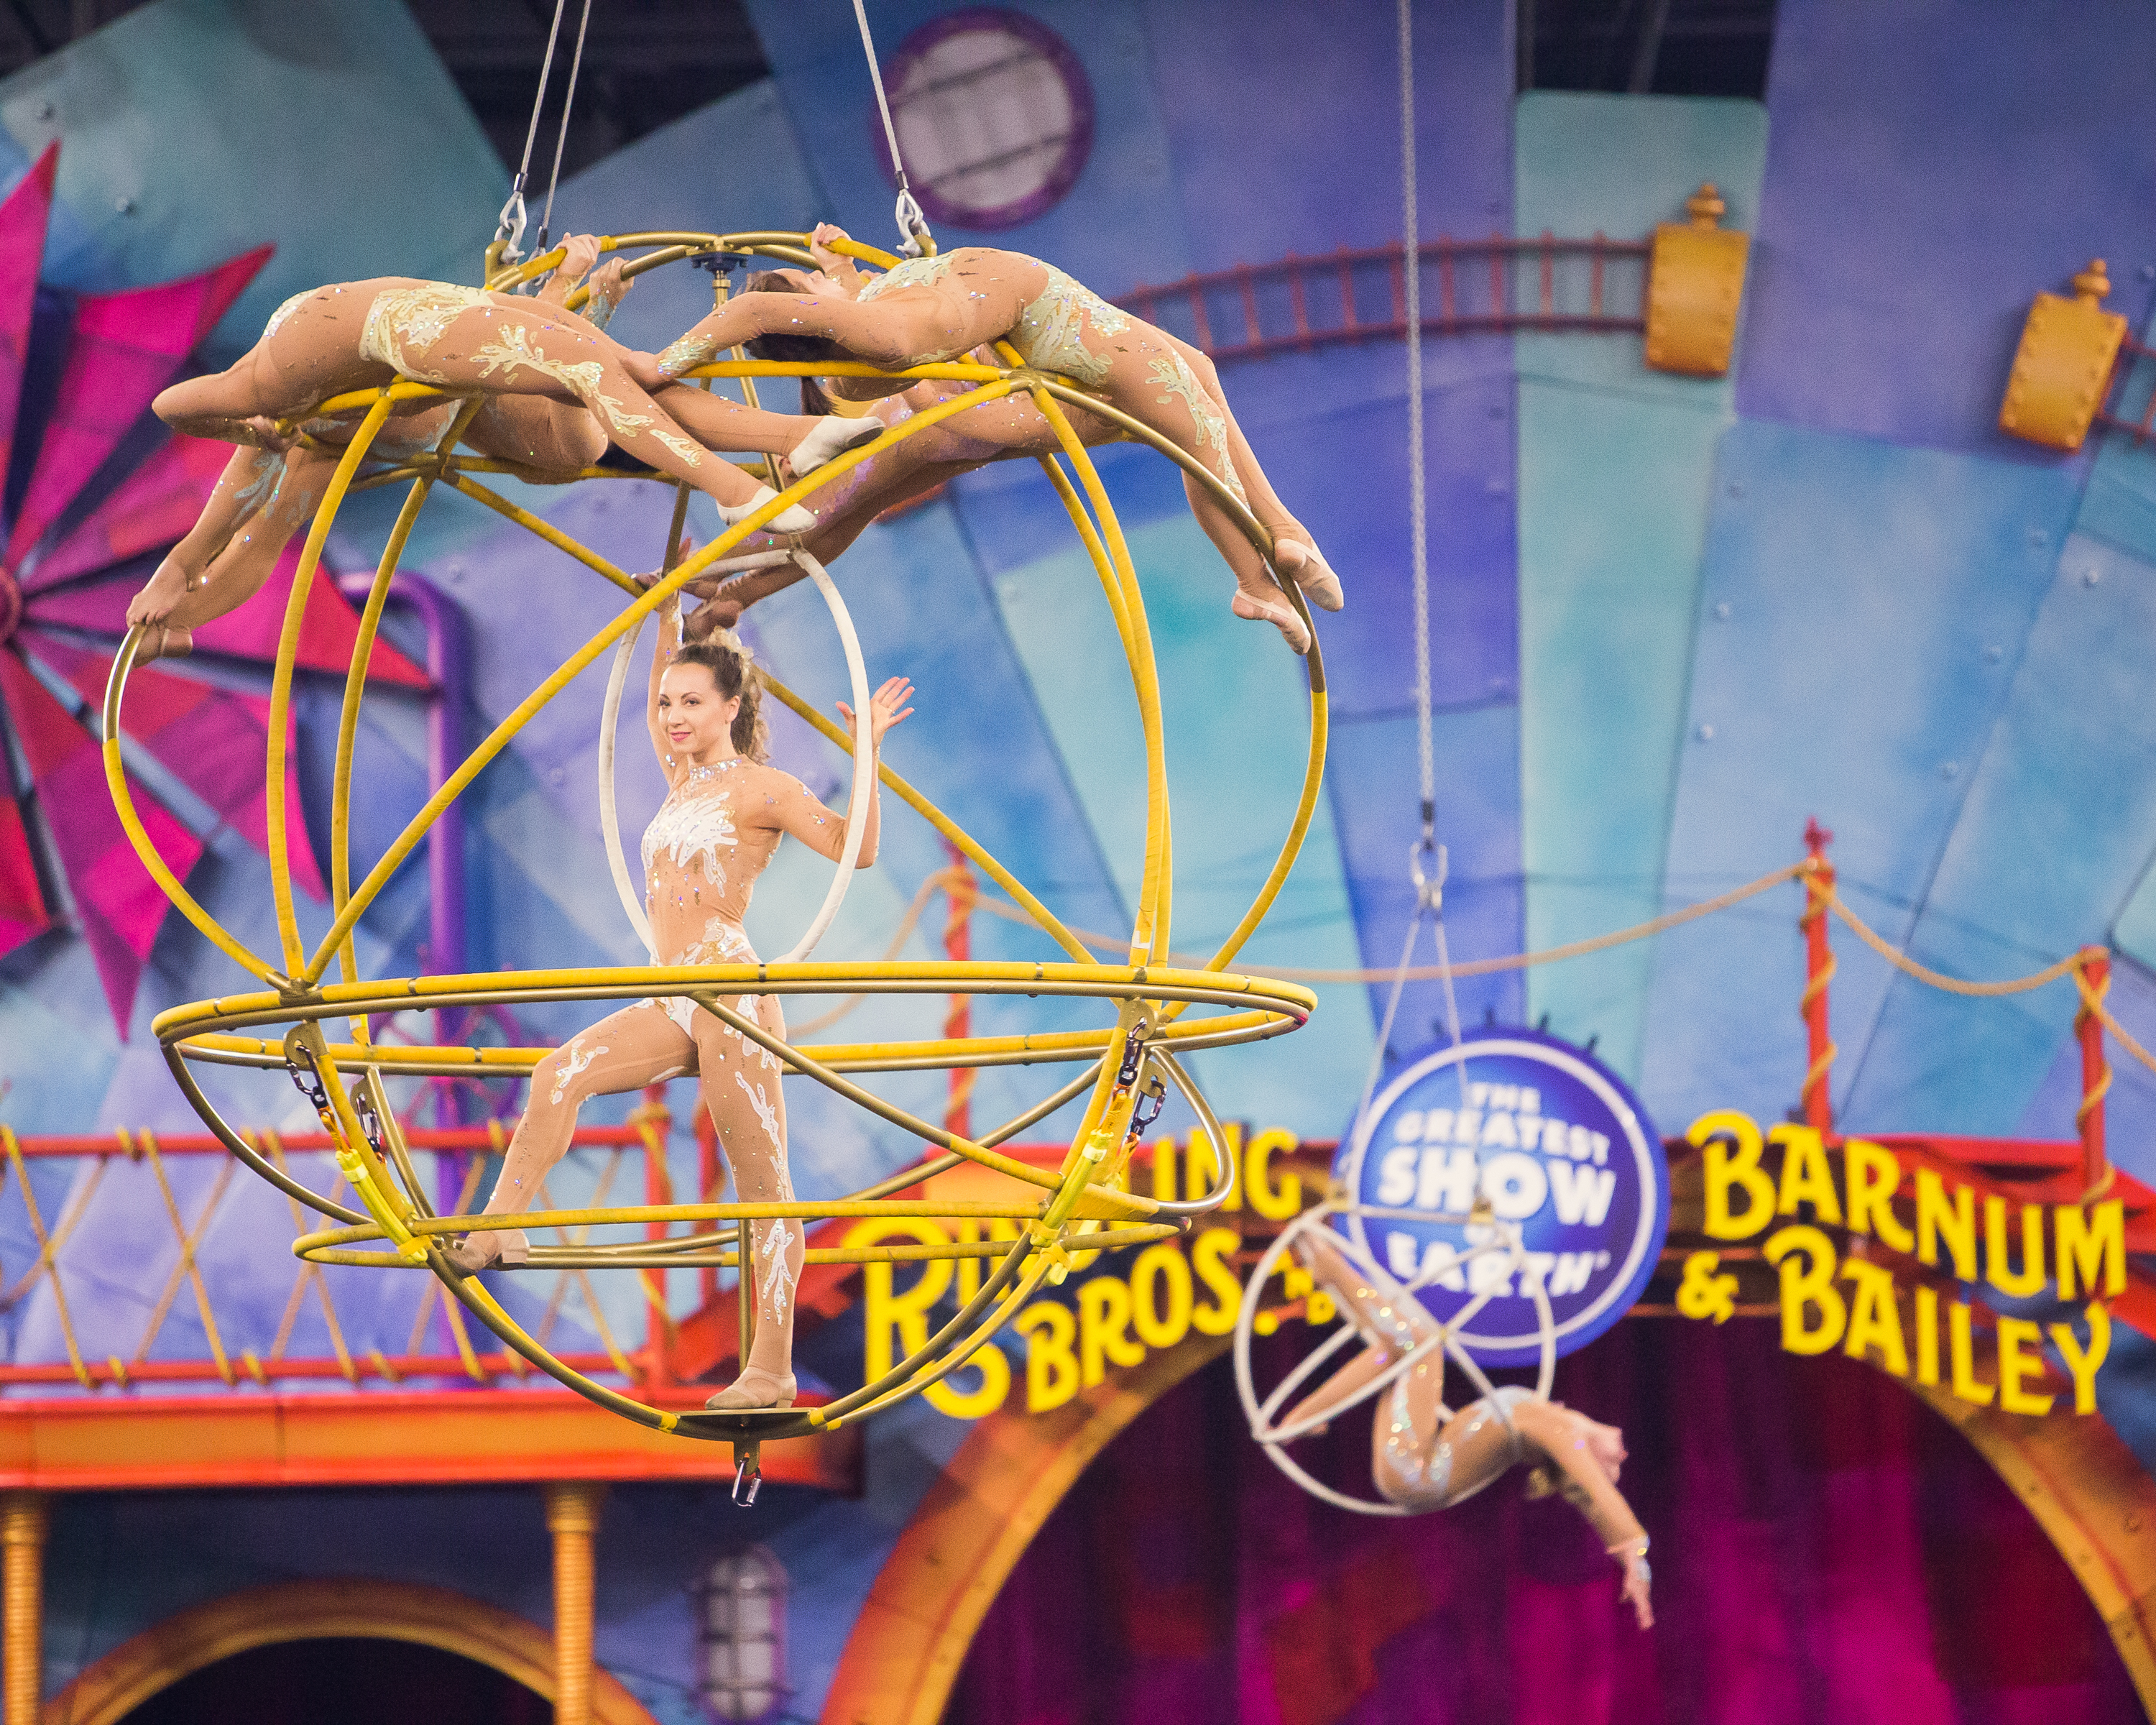 Ringling Bros Circus Xtreme aerial artists